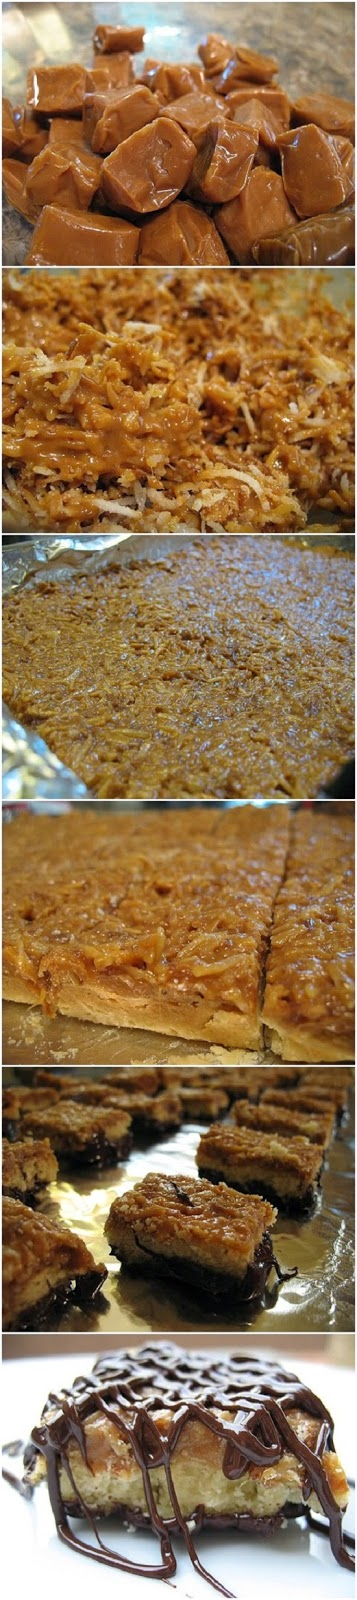 Homemade-Samoas-Cookie-Bars-Recipe